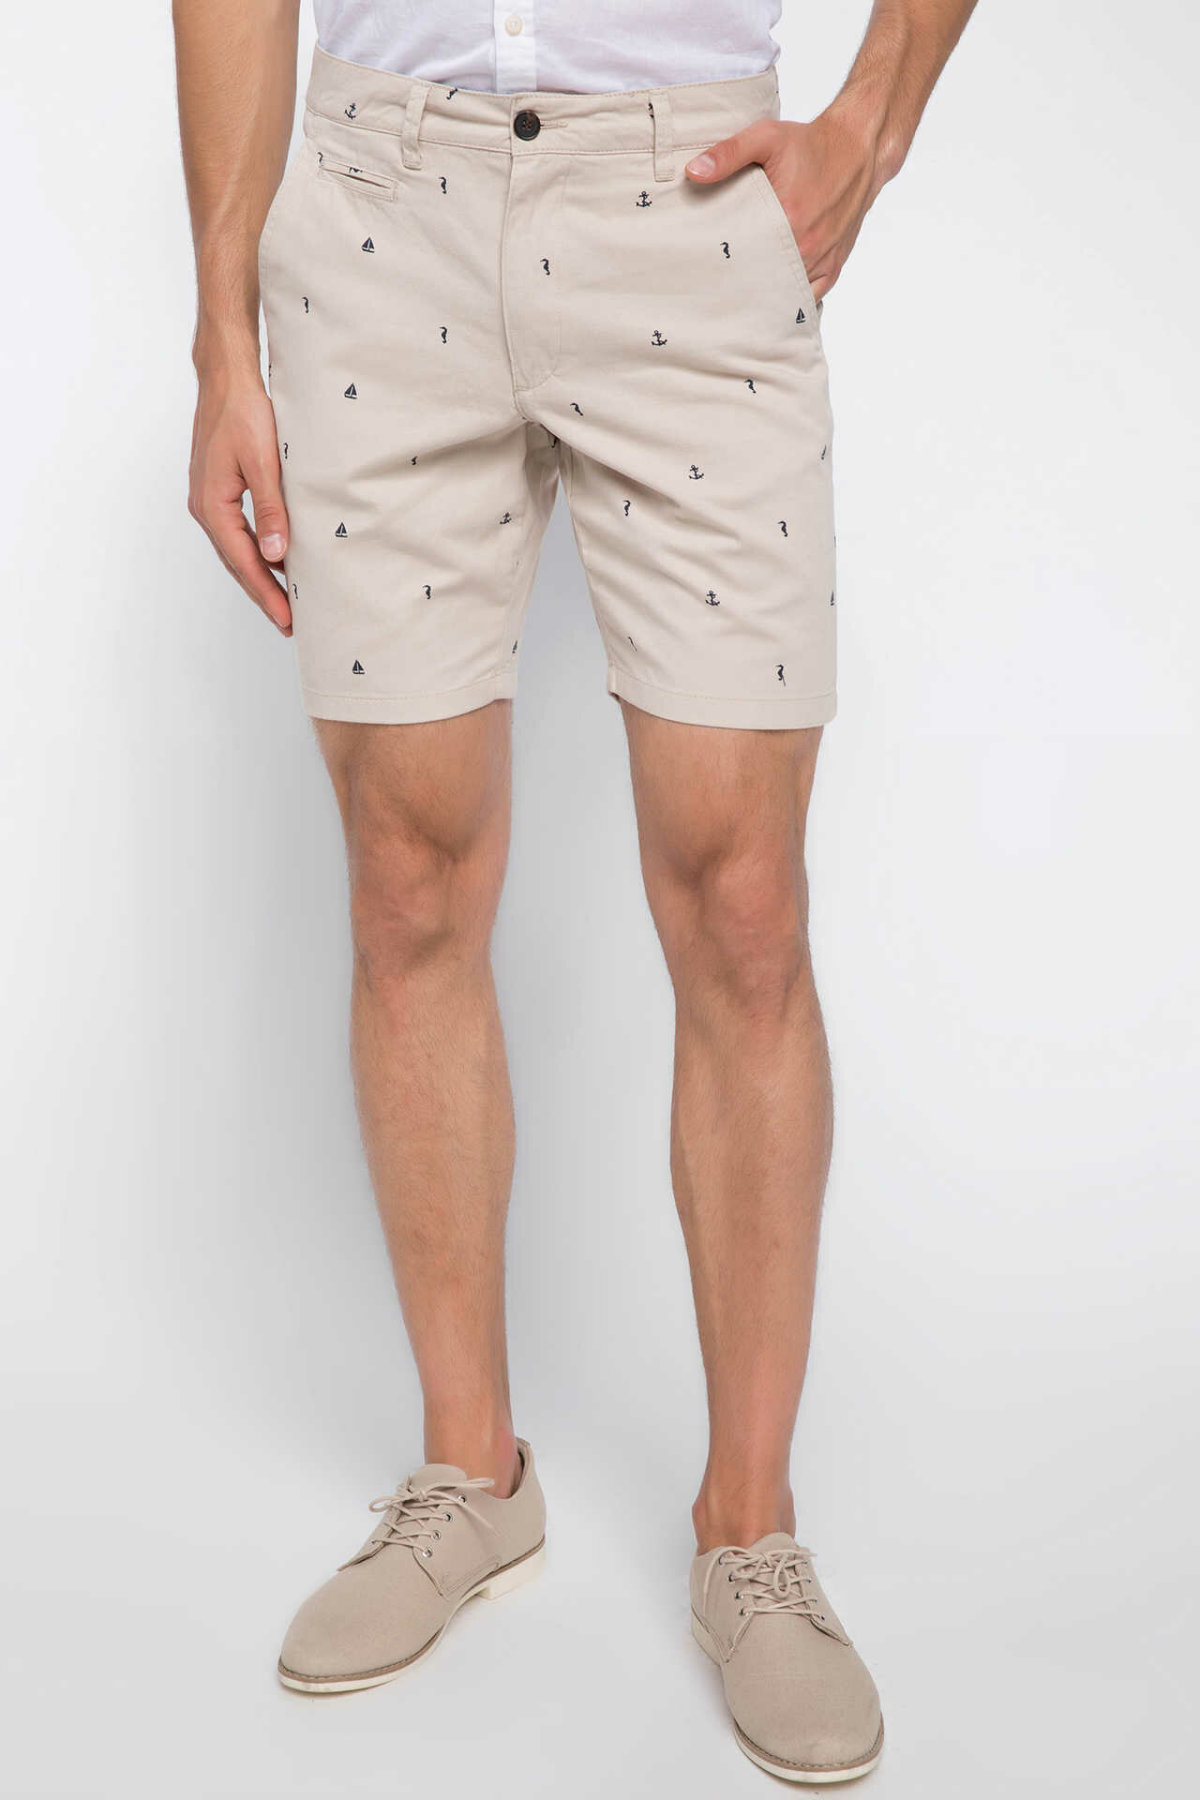 DeFacto Man Summer Casual Shorts Men Mid-waist Bottom Short Male Beige Prints Shorts Pants-I8218AZ18HS